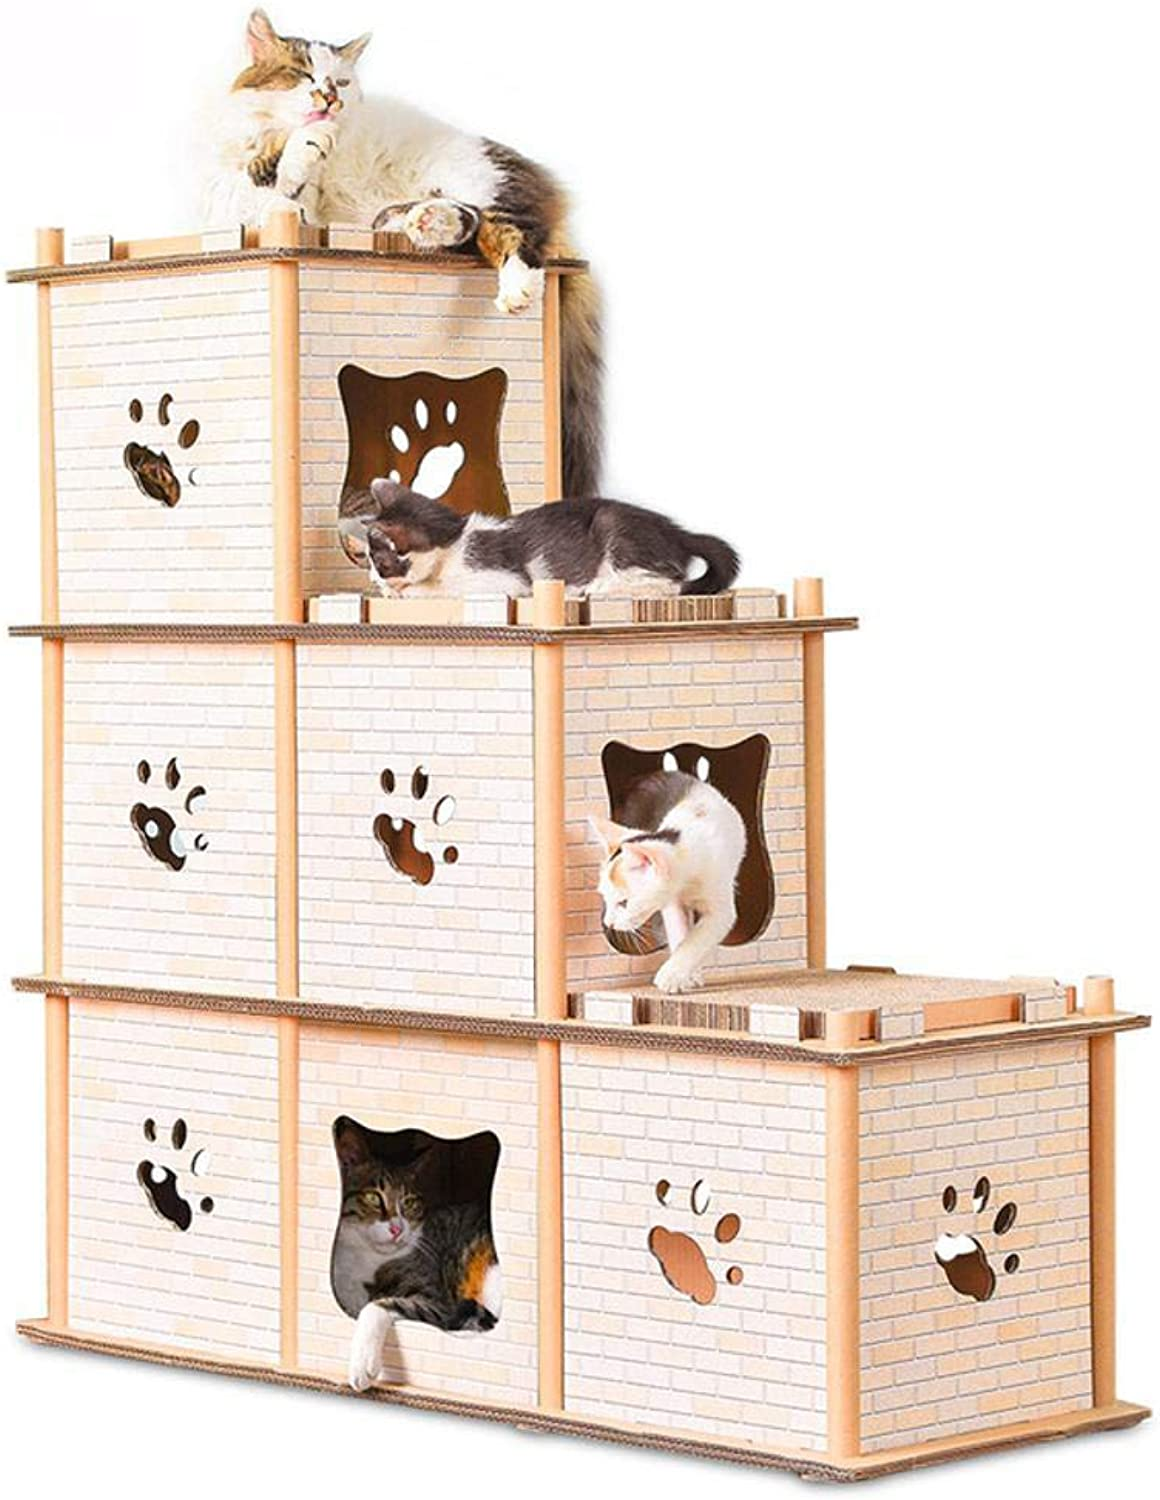 Hexiansheng Cat Climb Trees Corrugated threedimensional cat house kitty home Grinding claw roof multideformation 98  37  99cm